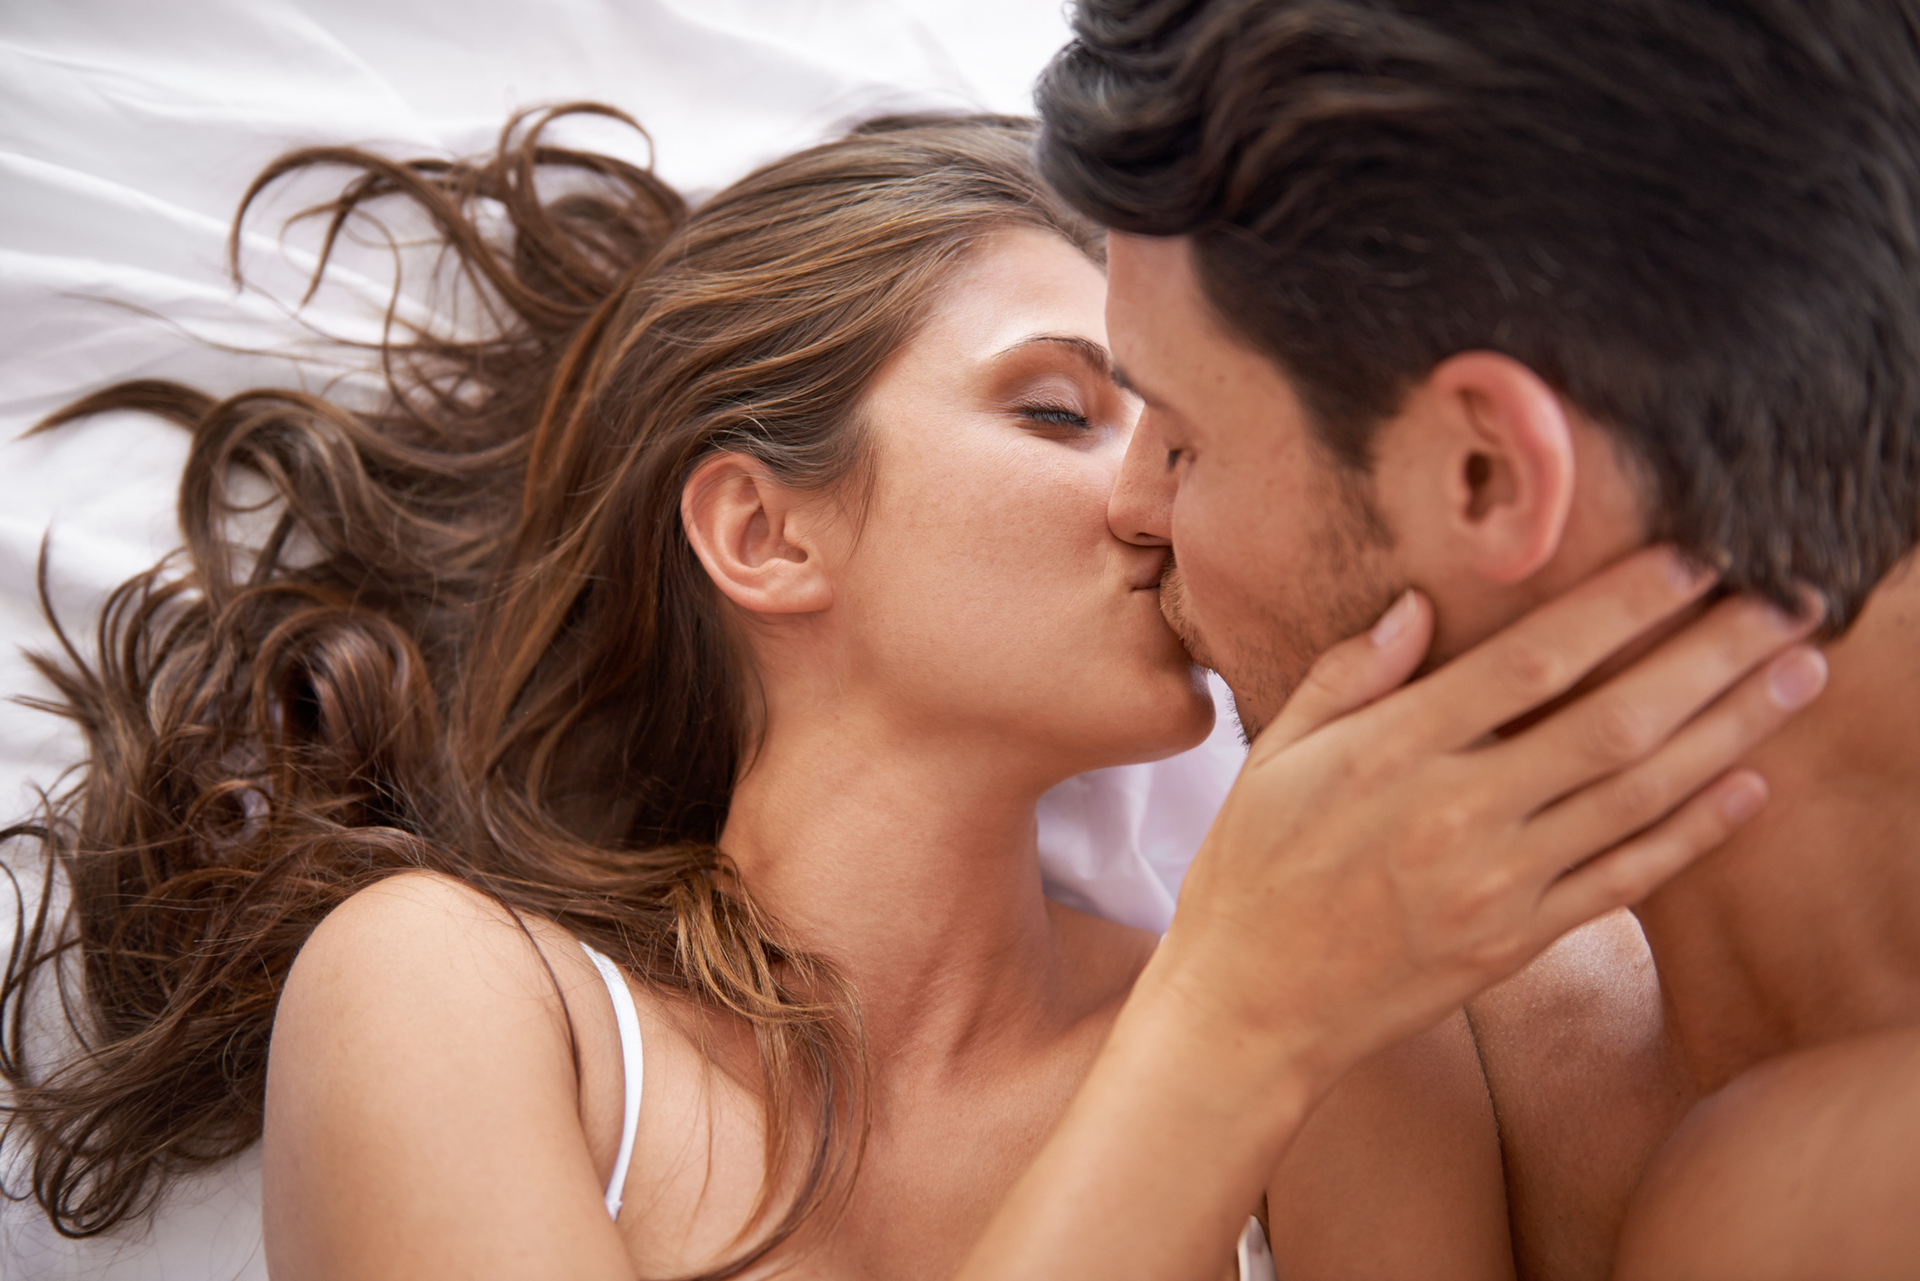 Erotic moments orgasm love story sexy stock photo